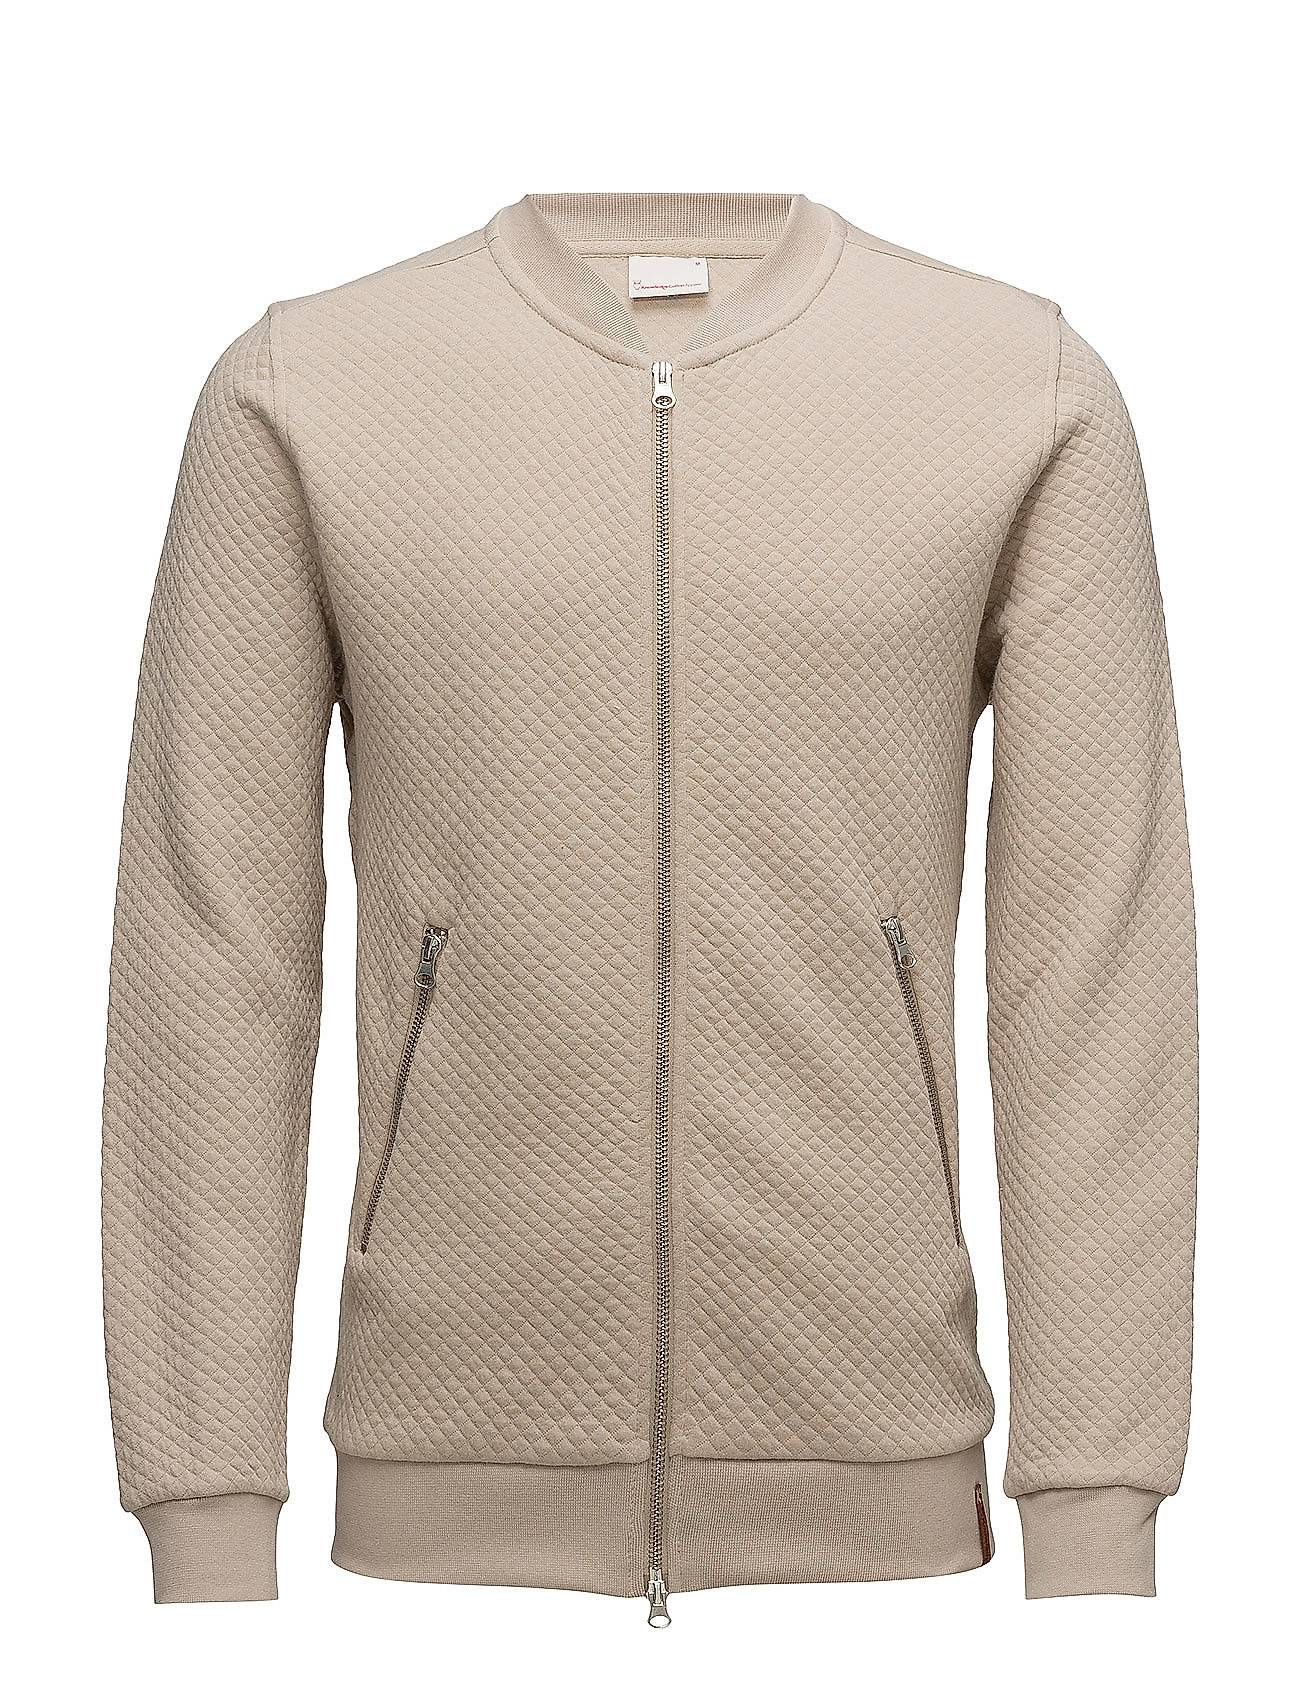 Knowledge Cotton Apparel Quilted Zip Cardigan - Gots